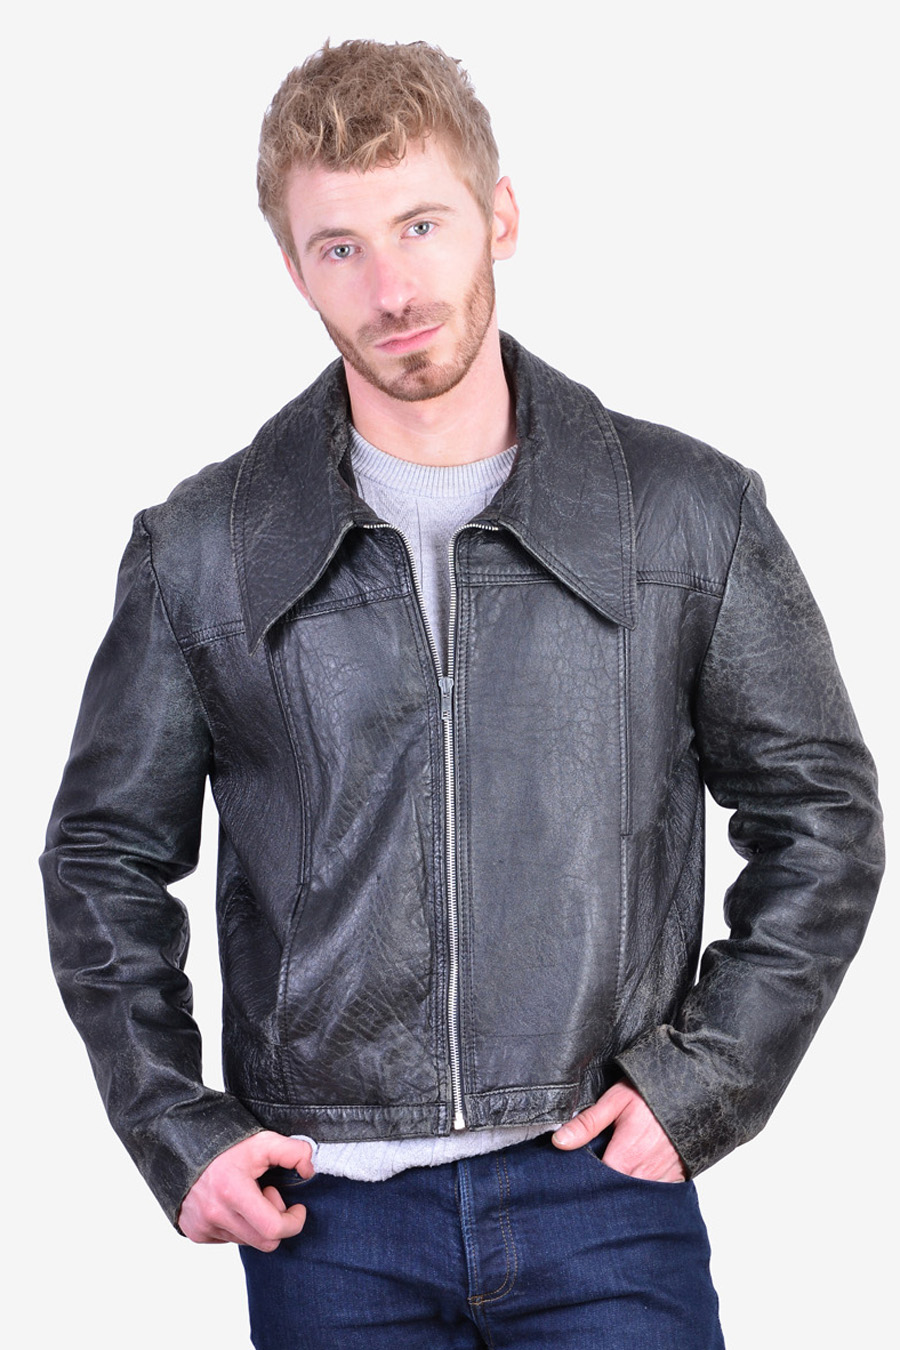 Retro 1970's leather jacket